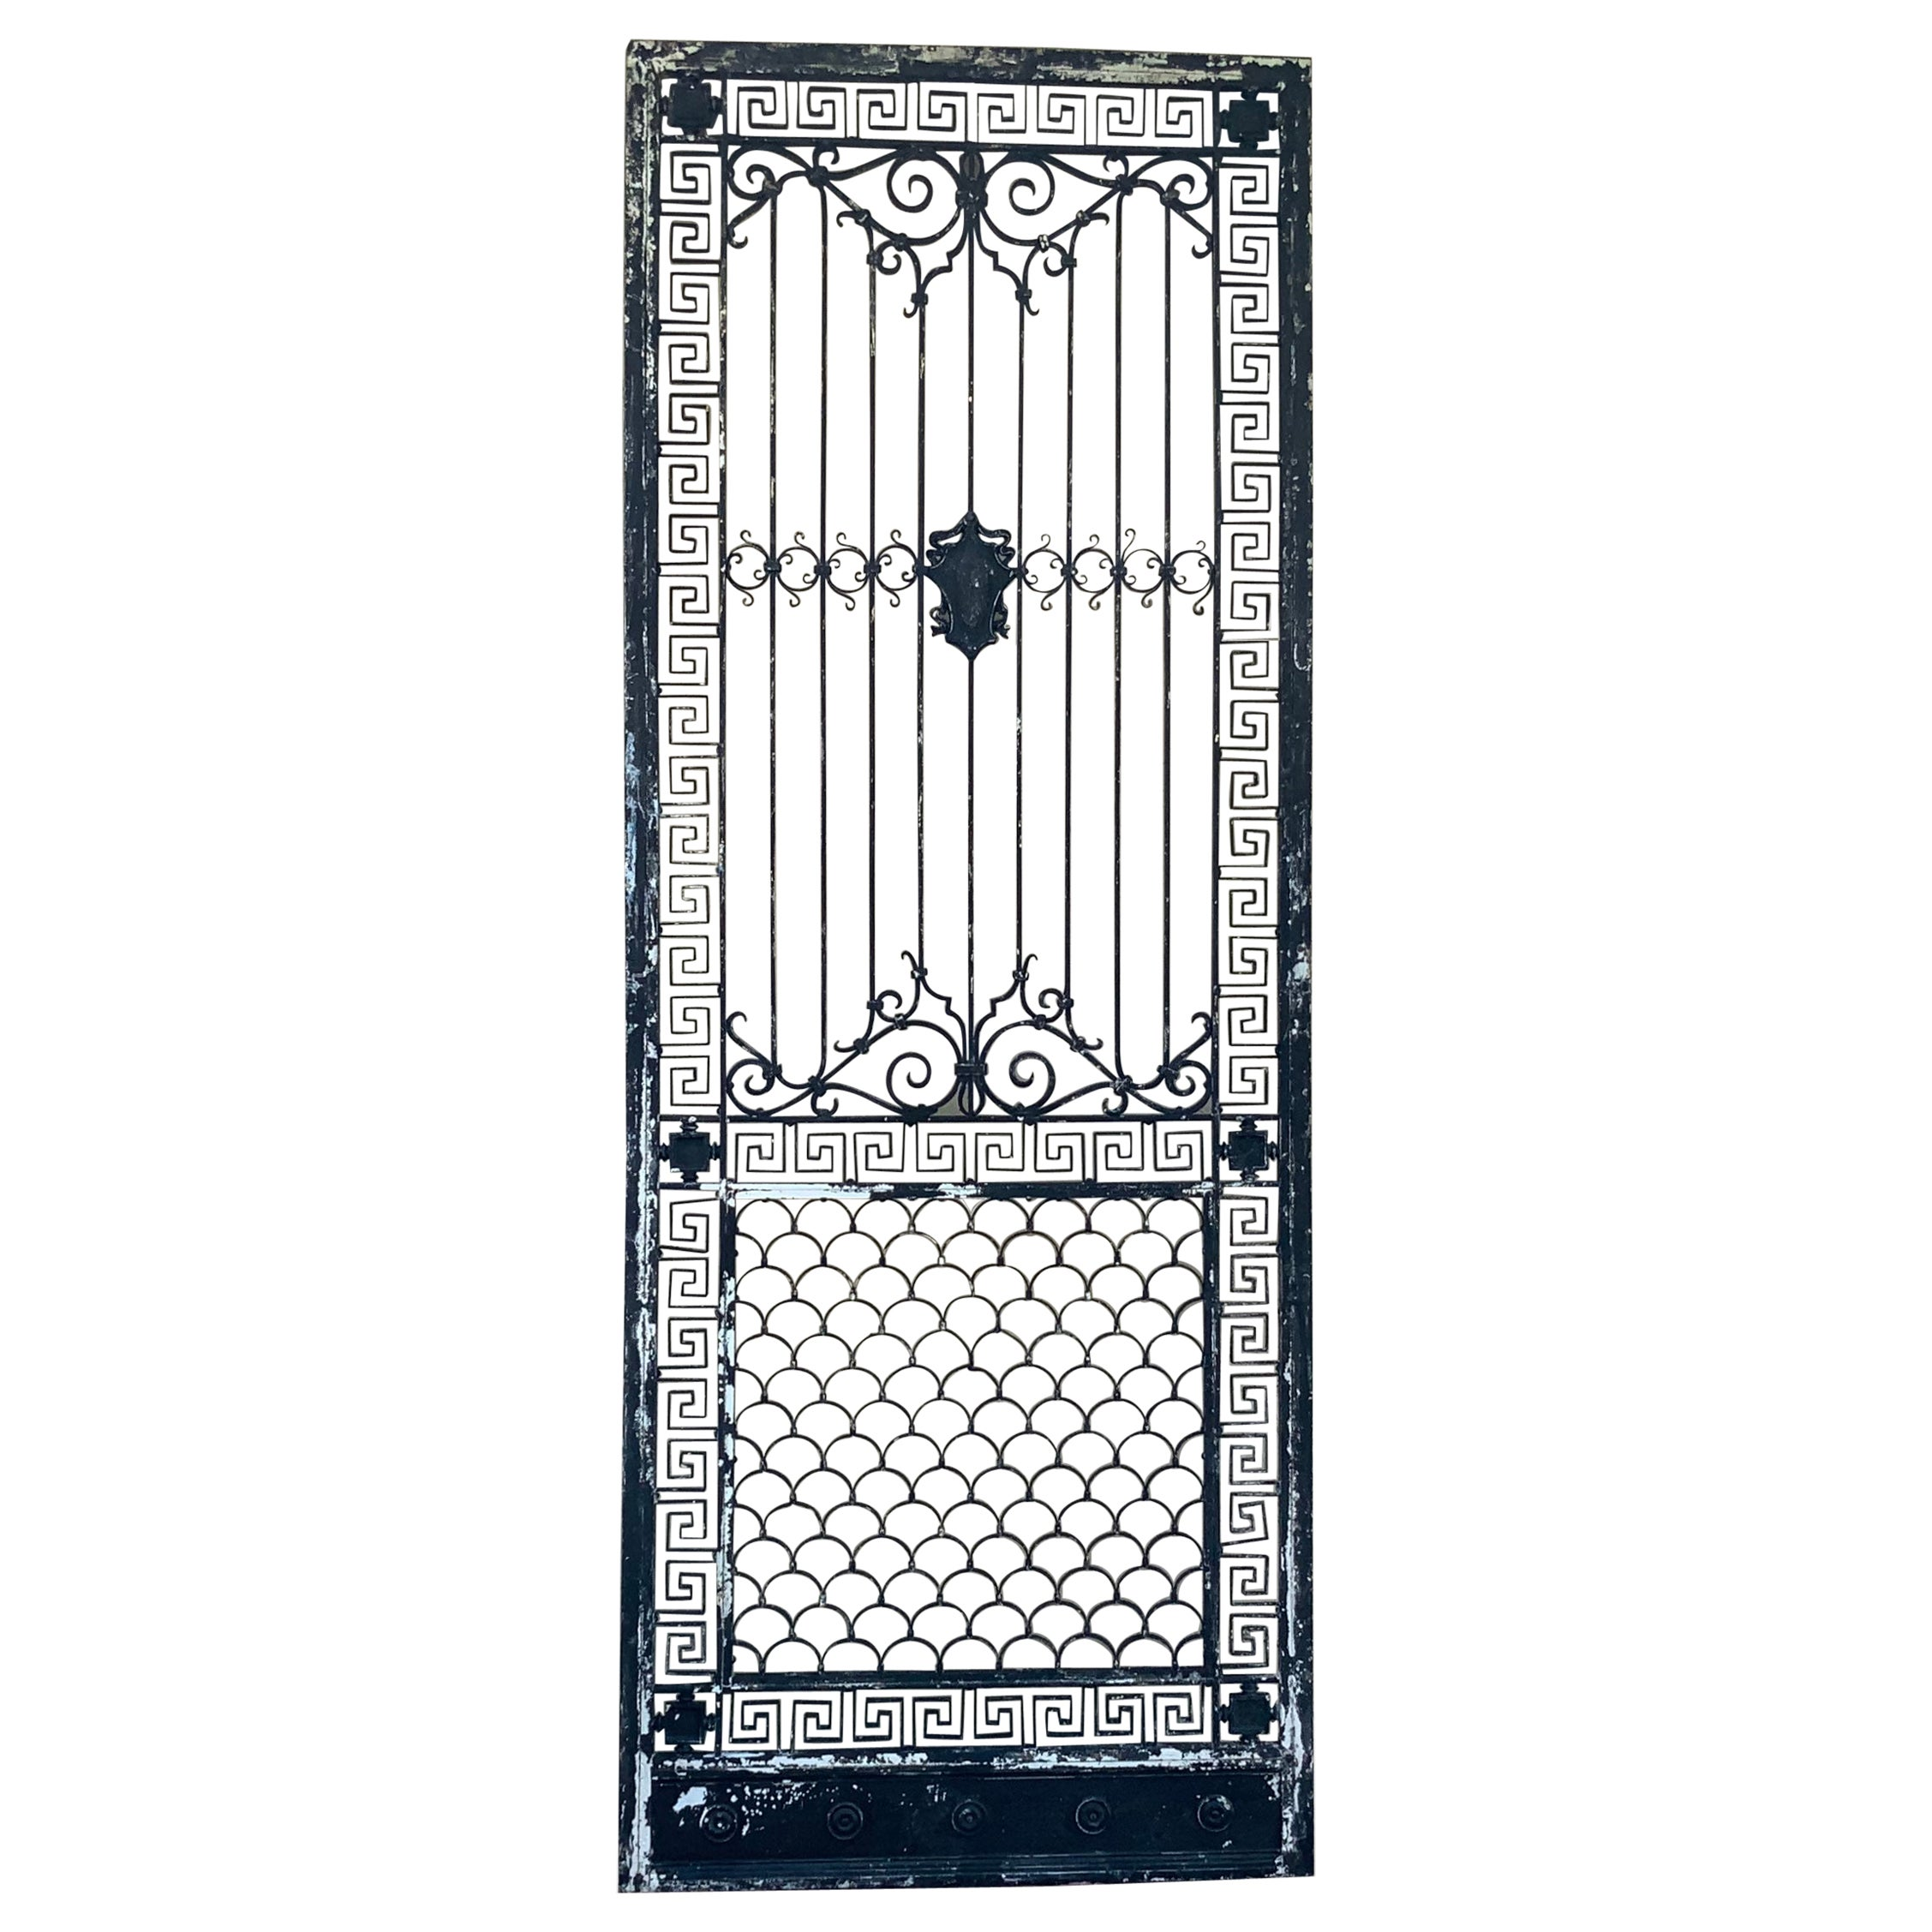 1930s Wrought Iron Gate or Door